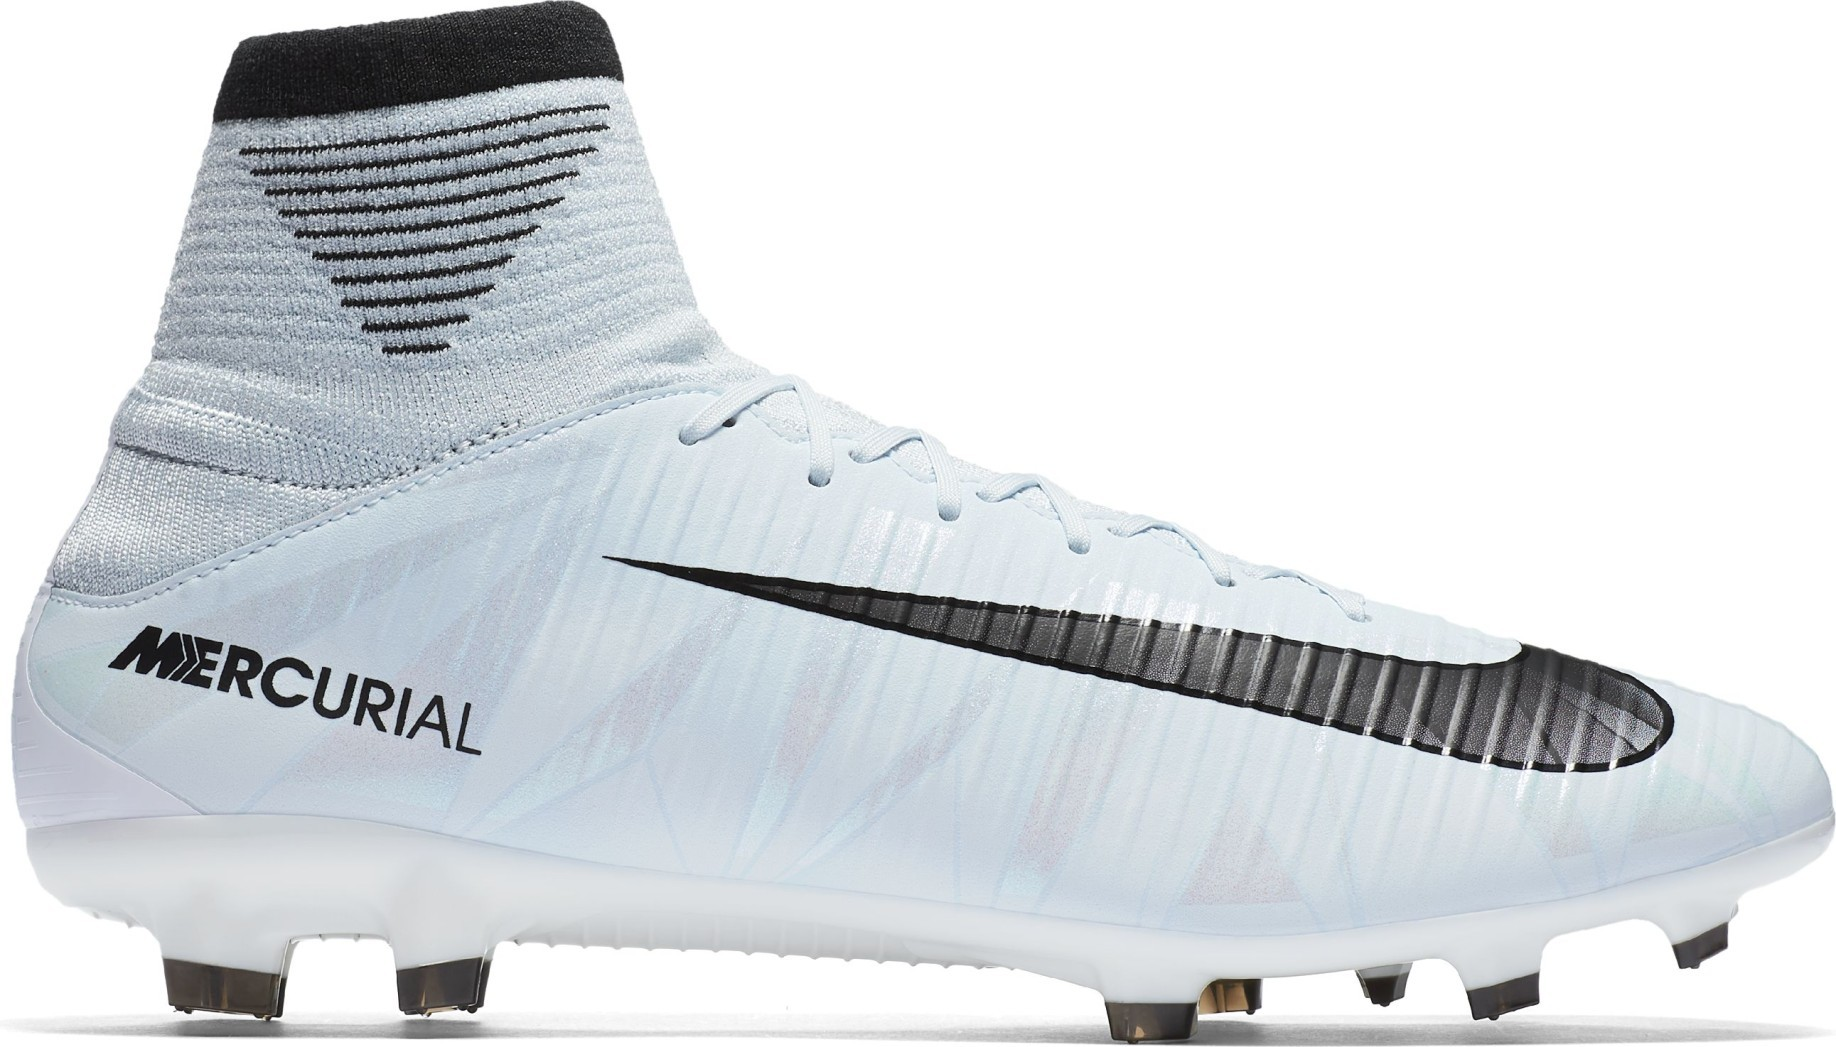 Football boots Nike Mercurial Superfly V CR7 FG Cut To Brilliance colore  Blue White - Nike - SportIT.com 00f828cf875